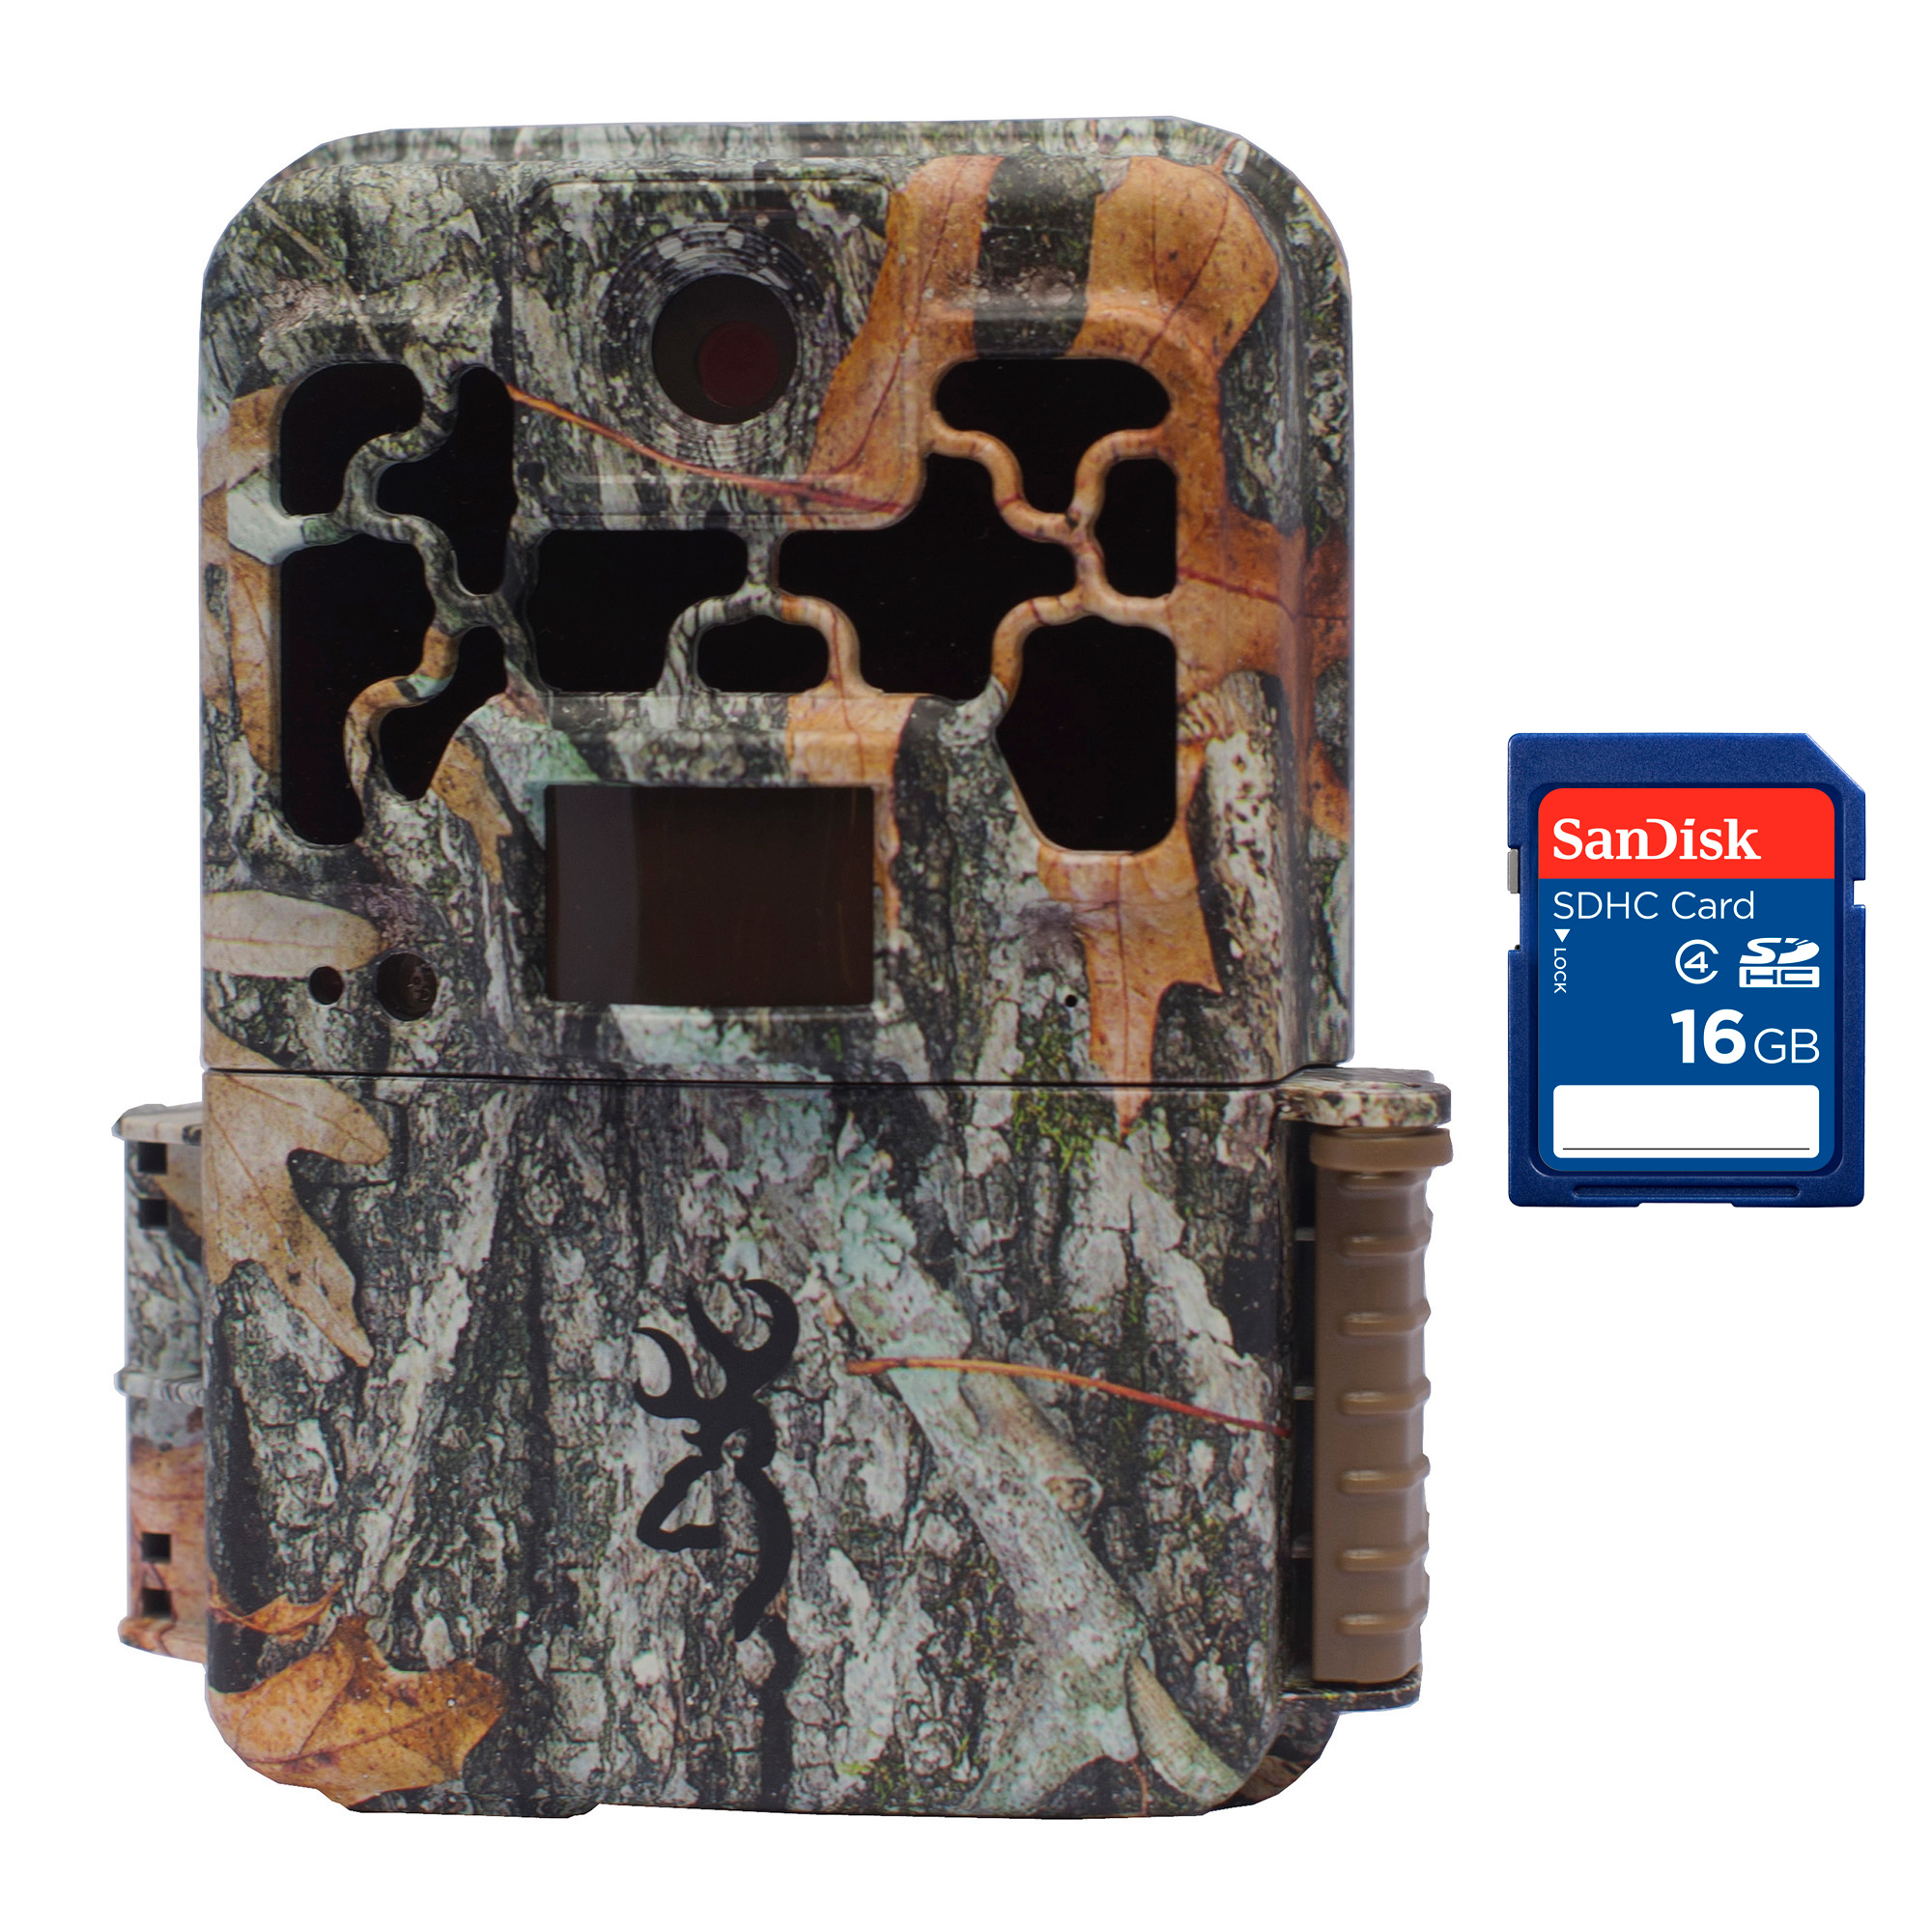 Browning Trail Cameras Spec Ops FHD Platinum 10MP IR Game Camera + 16GB SD Card by Browning Trail Cameras